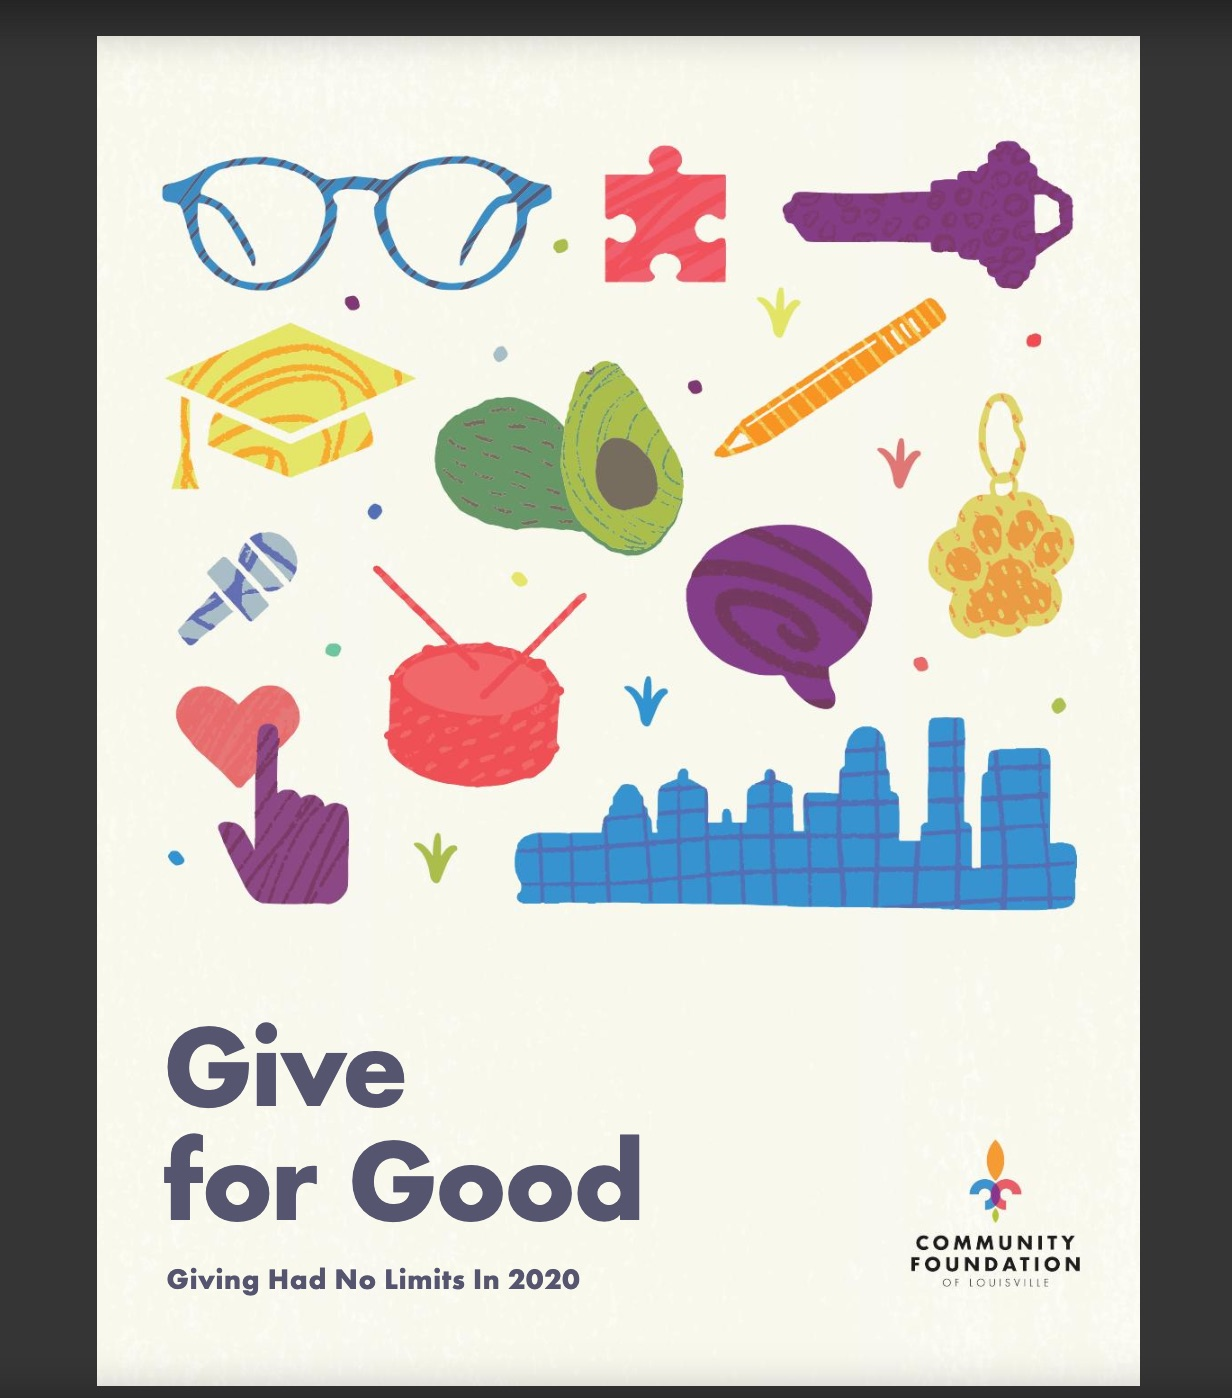 Community Foundation of St. Louis 2020 Nonprofit Annual Report cover